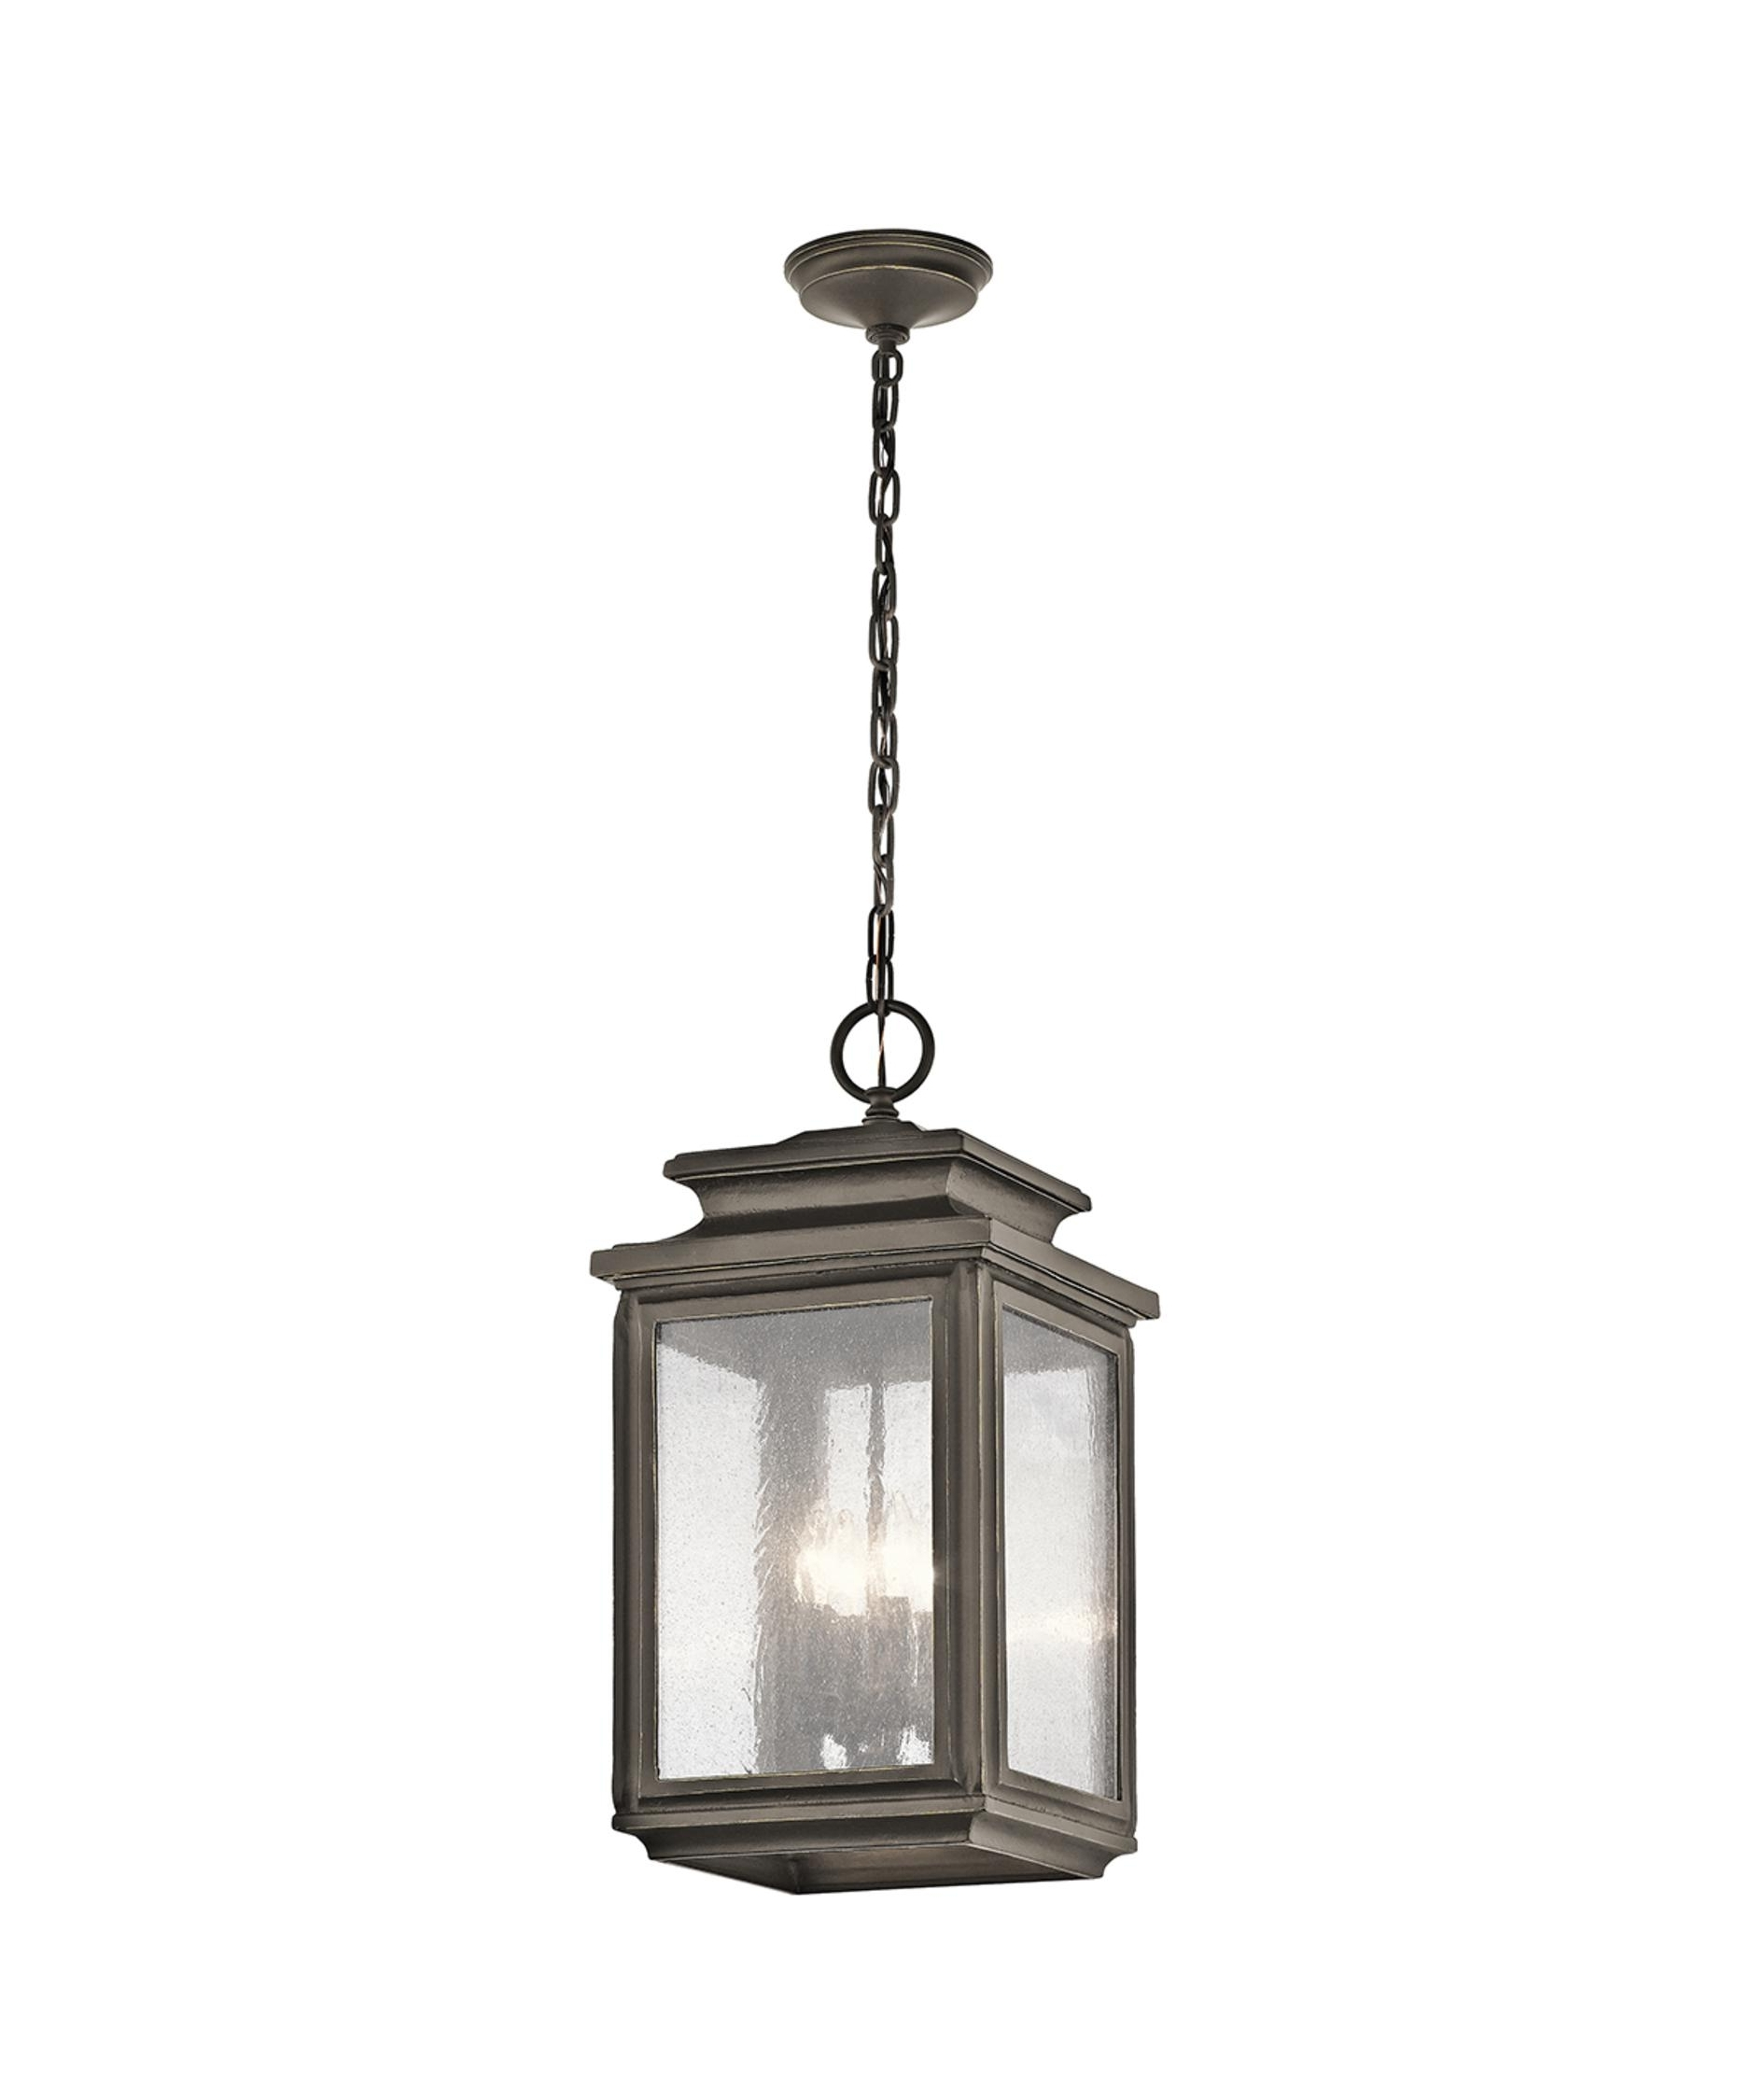 Well Liked Kichler 49505 Wiscombe Park 11 Inch Wide 4 Light Outdoor Hanging Regarding Italian Outdoor Lanterns (View 7 of 20)